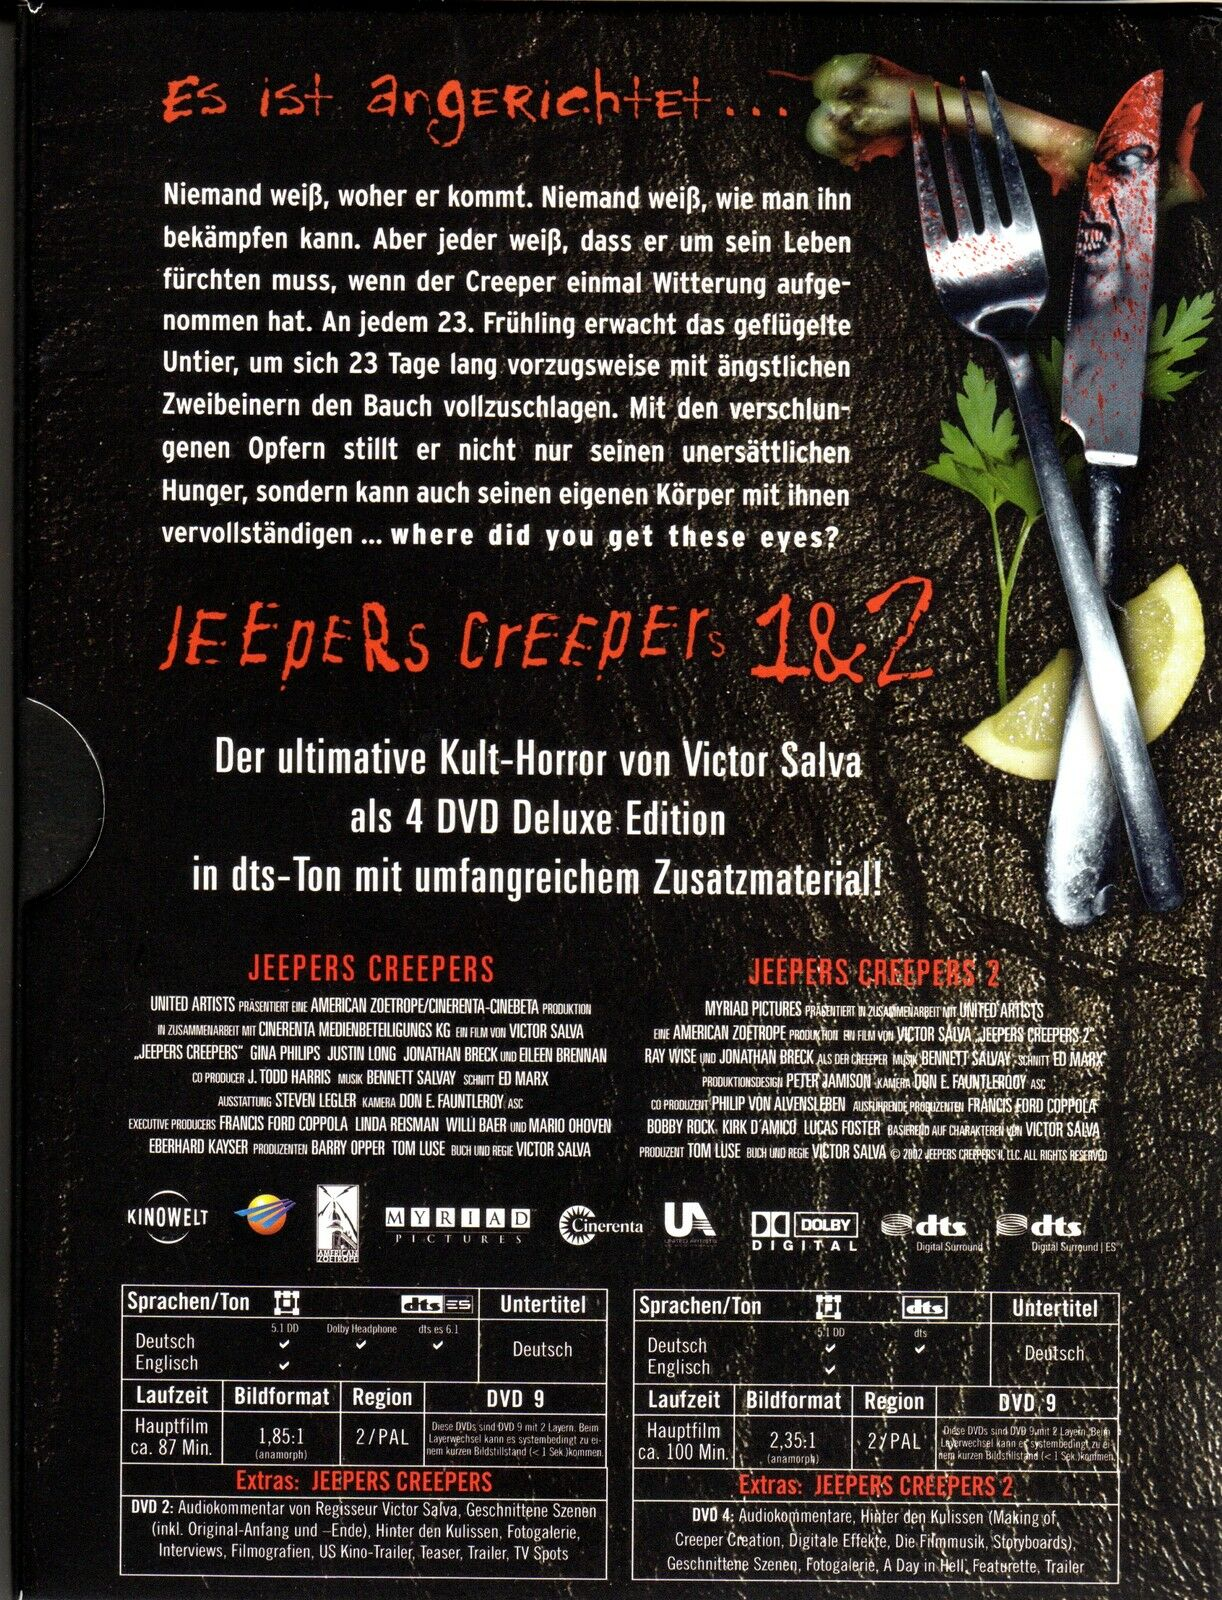 Jeepers Creepers 1 & 2 Deluxe Edition 4 DVDs by Victor Salva | DVD